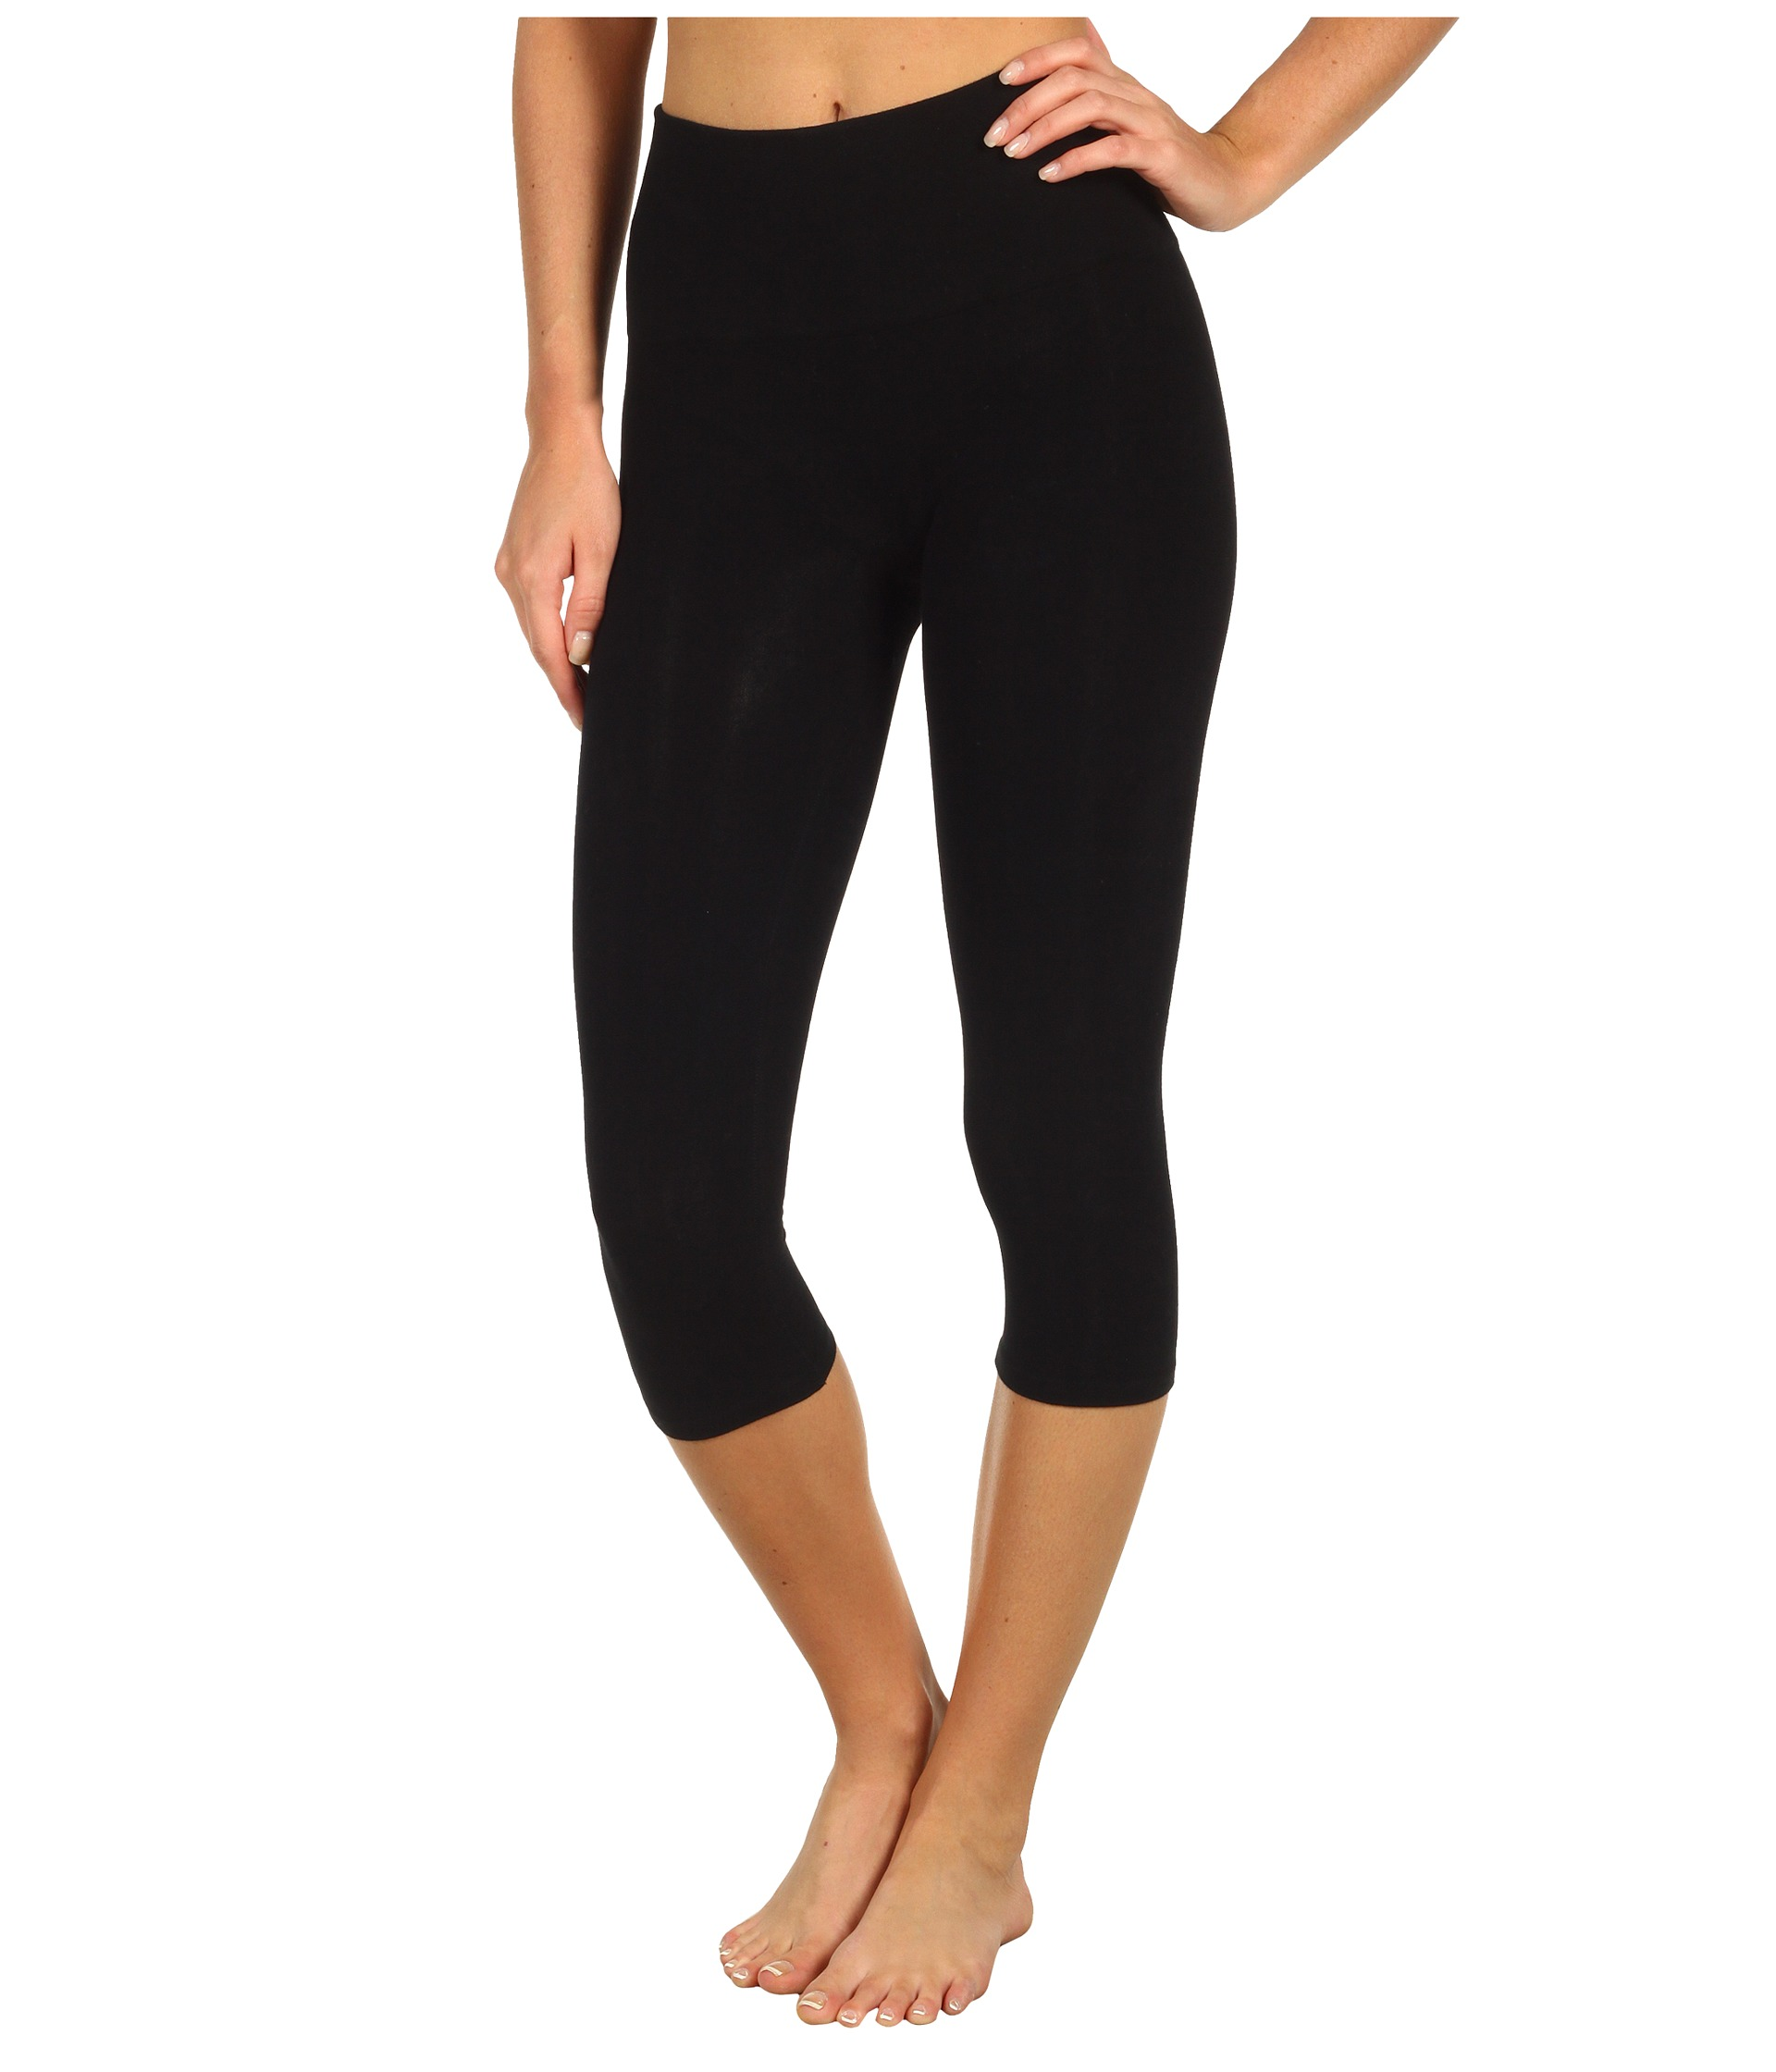 Spanx Look-at-Me Leggings Cotton Capri - Zappos.com Free Shipping BOTH Ways